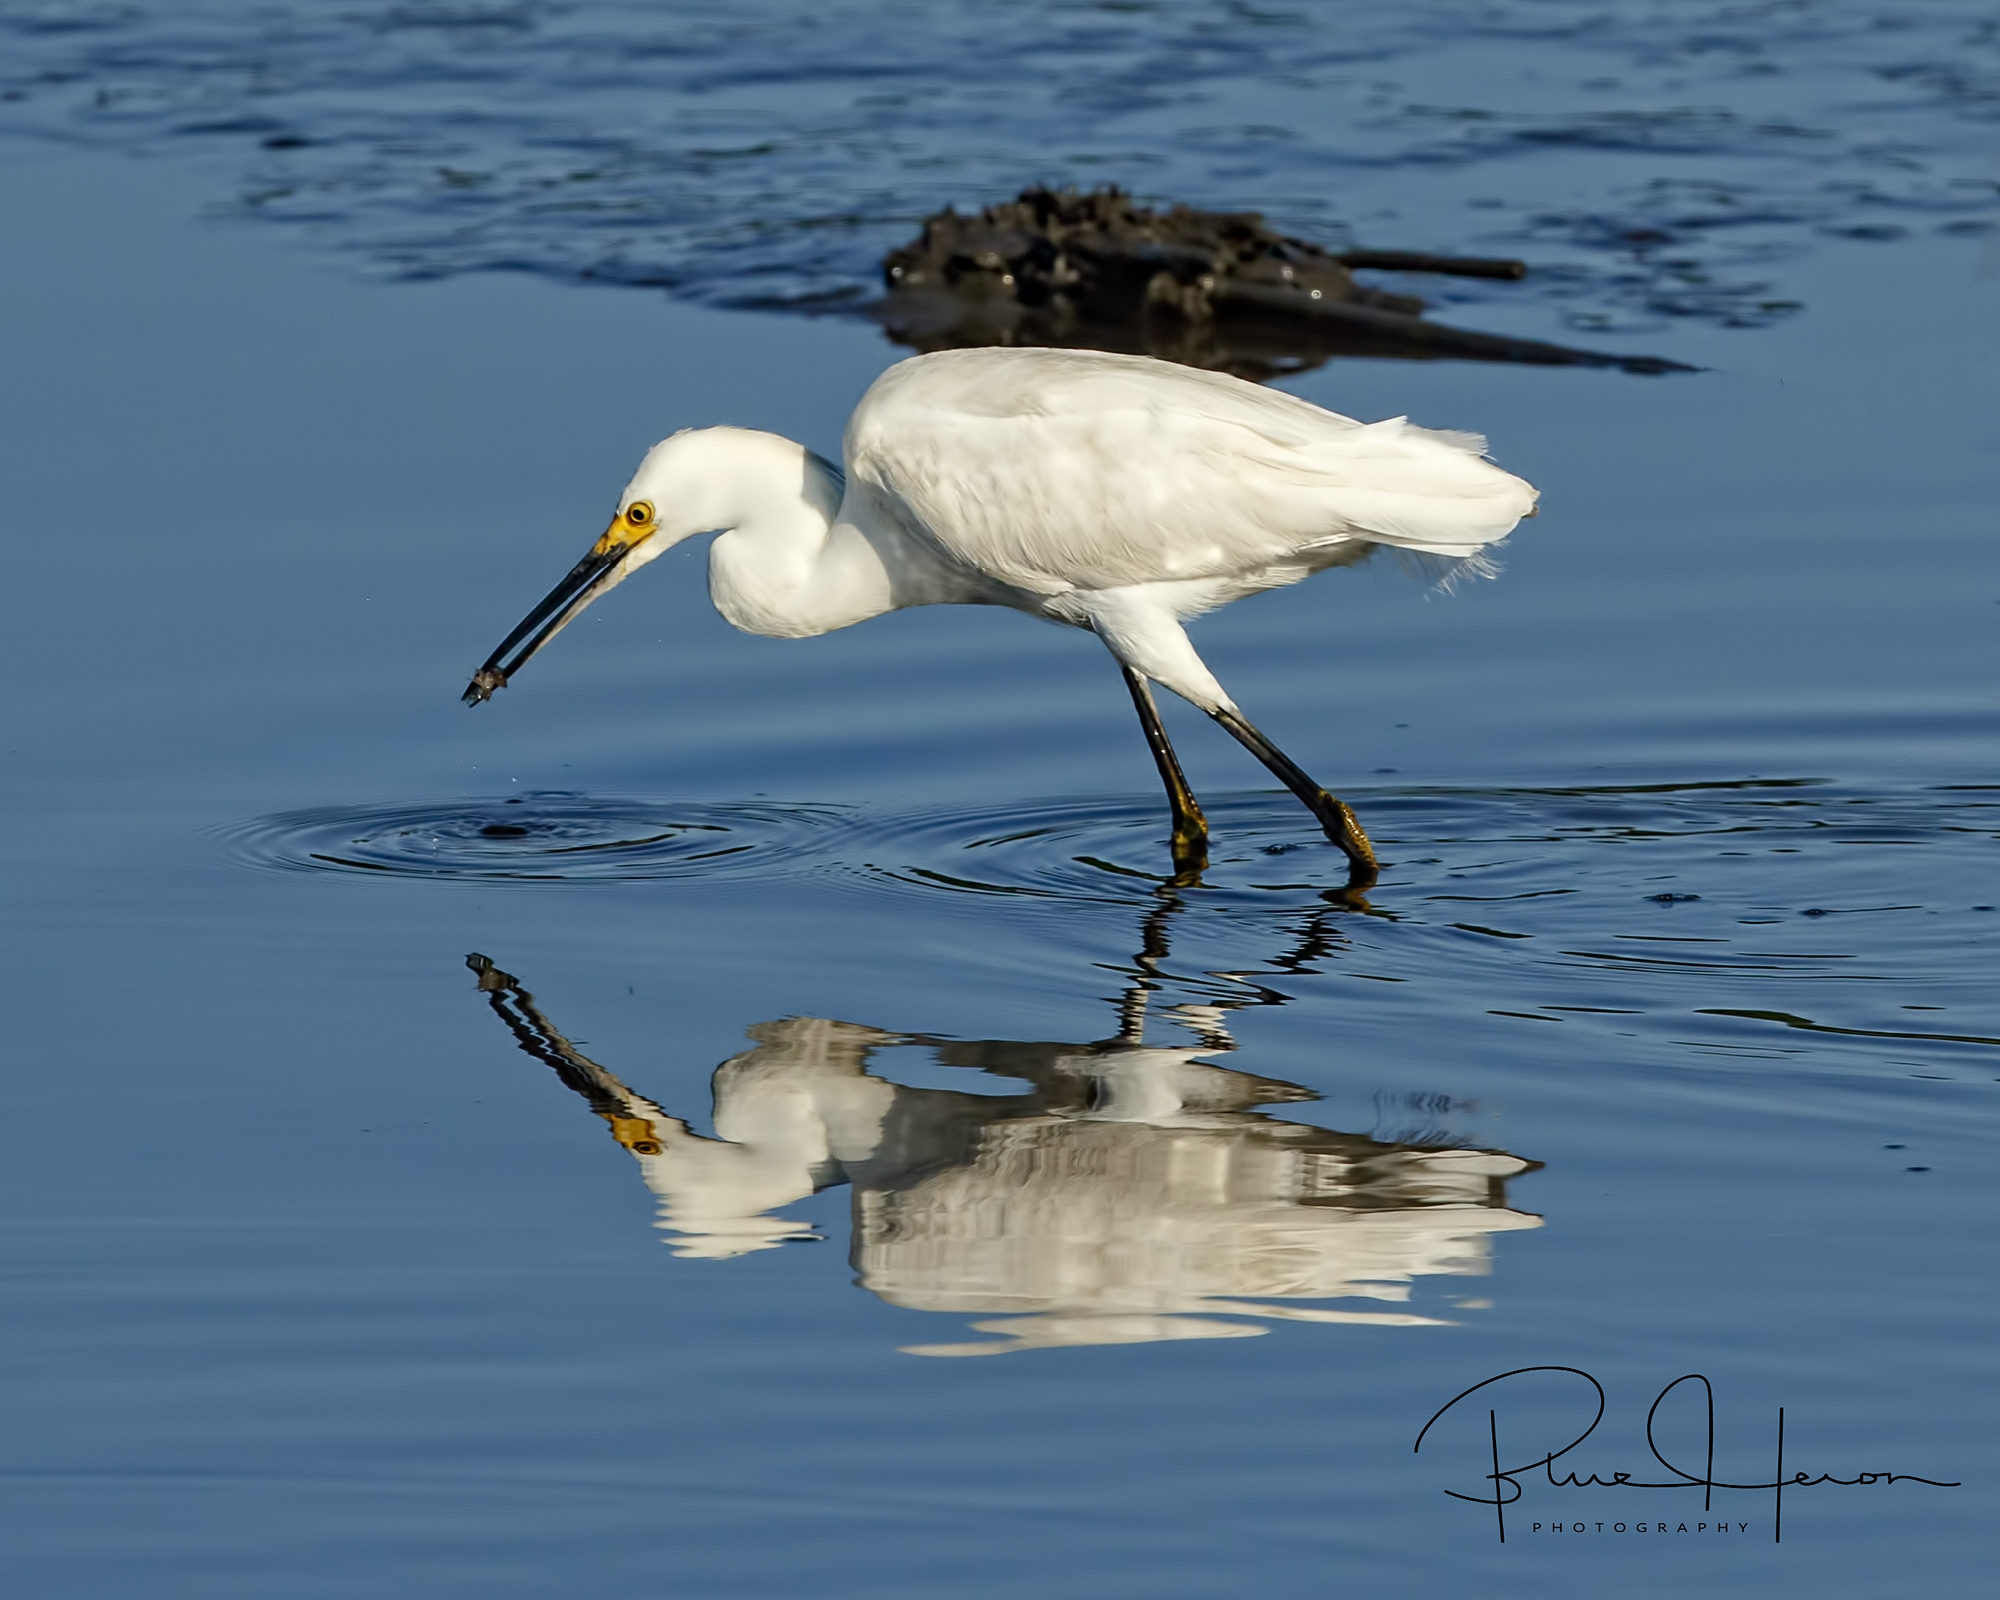 Neither was the Snowy Egret as it hunted for minnows in the falling tide